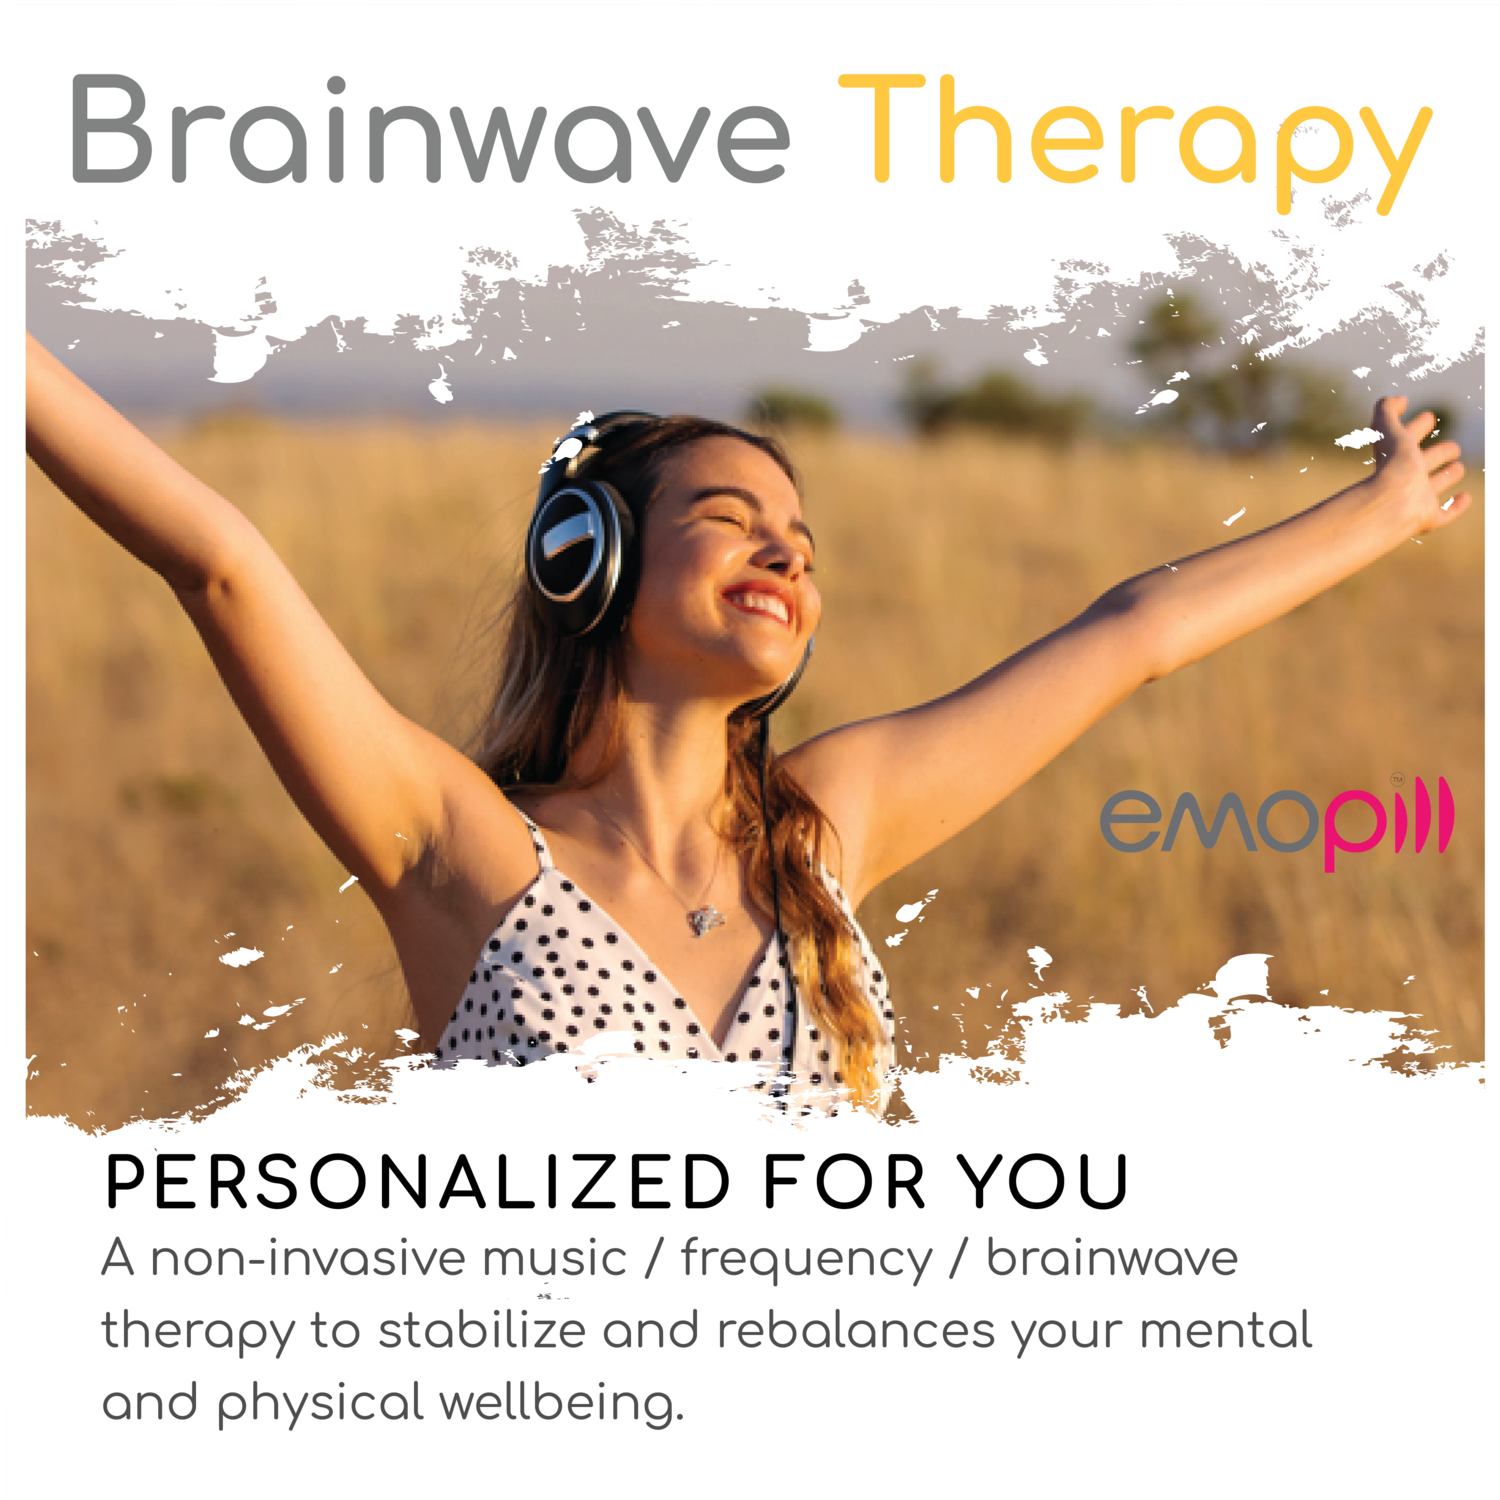 EmoPill - A Personalized Music Therapy